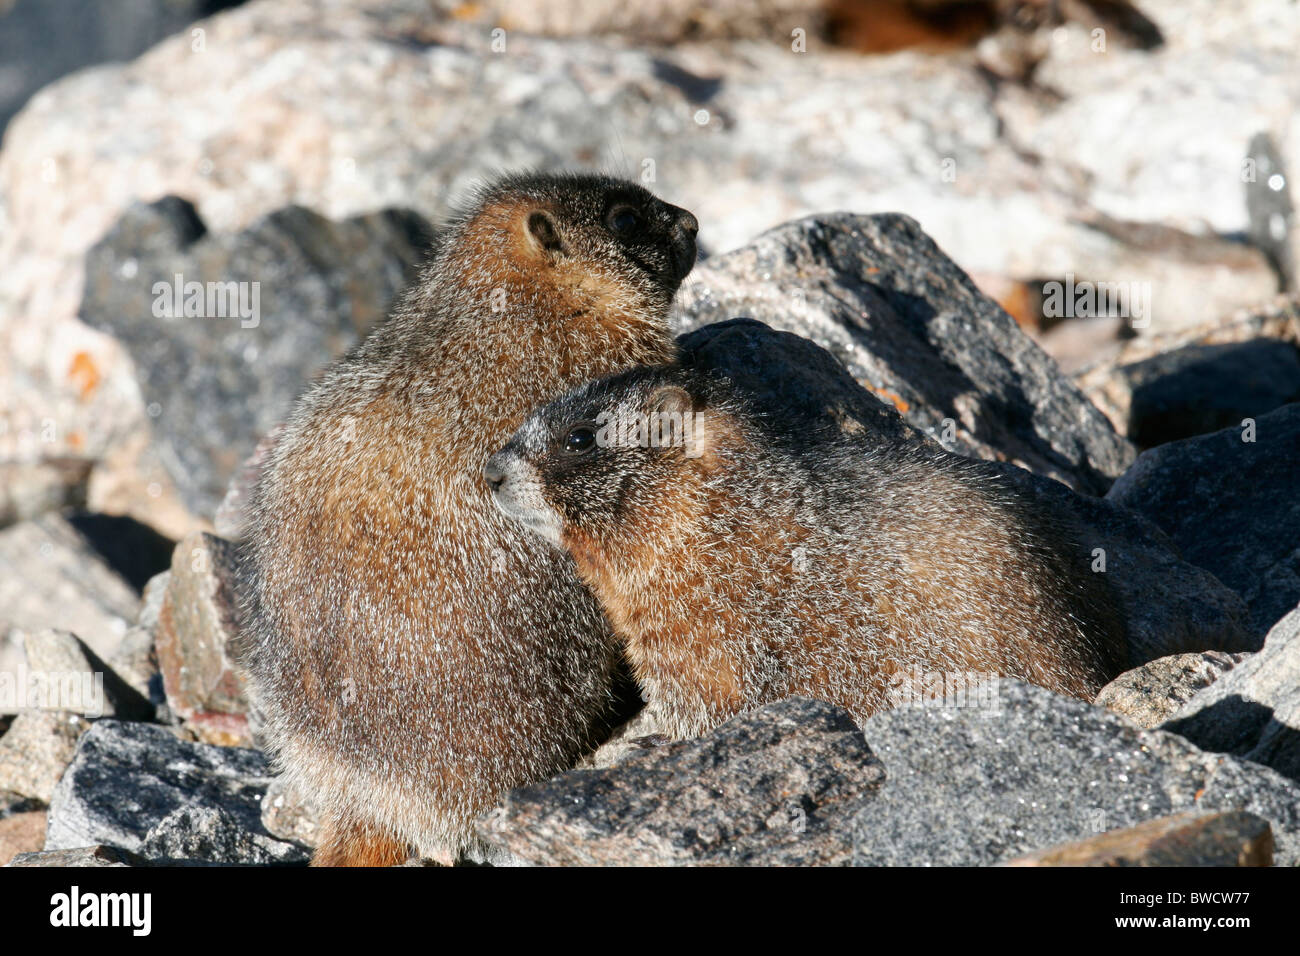 Two young marmots getting some sun - Stock Image